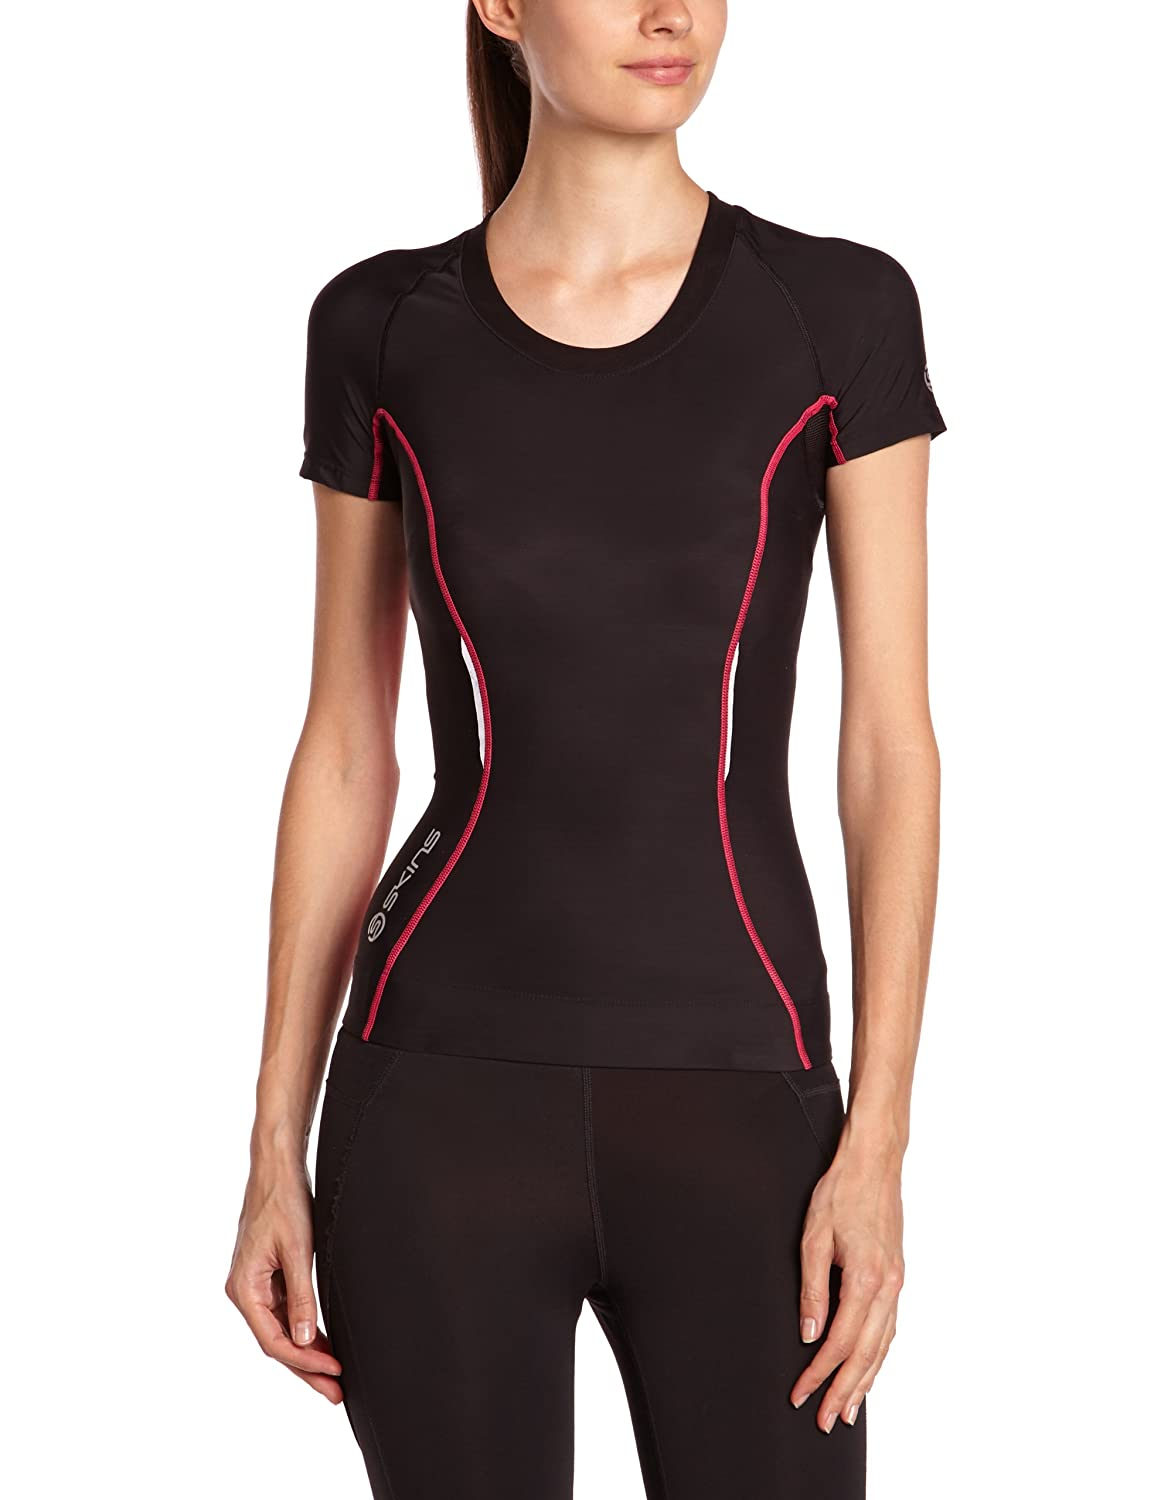 Skins A200 Women's Short Sleeve Compression Top Skins North America B6106-3004